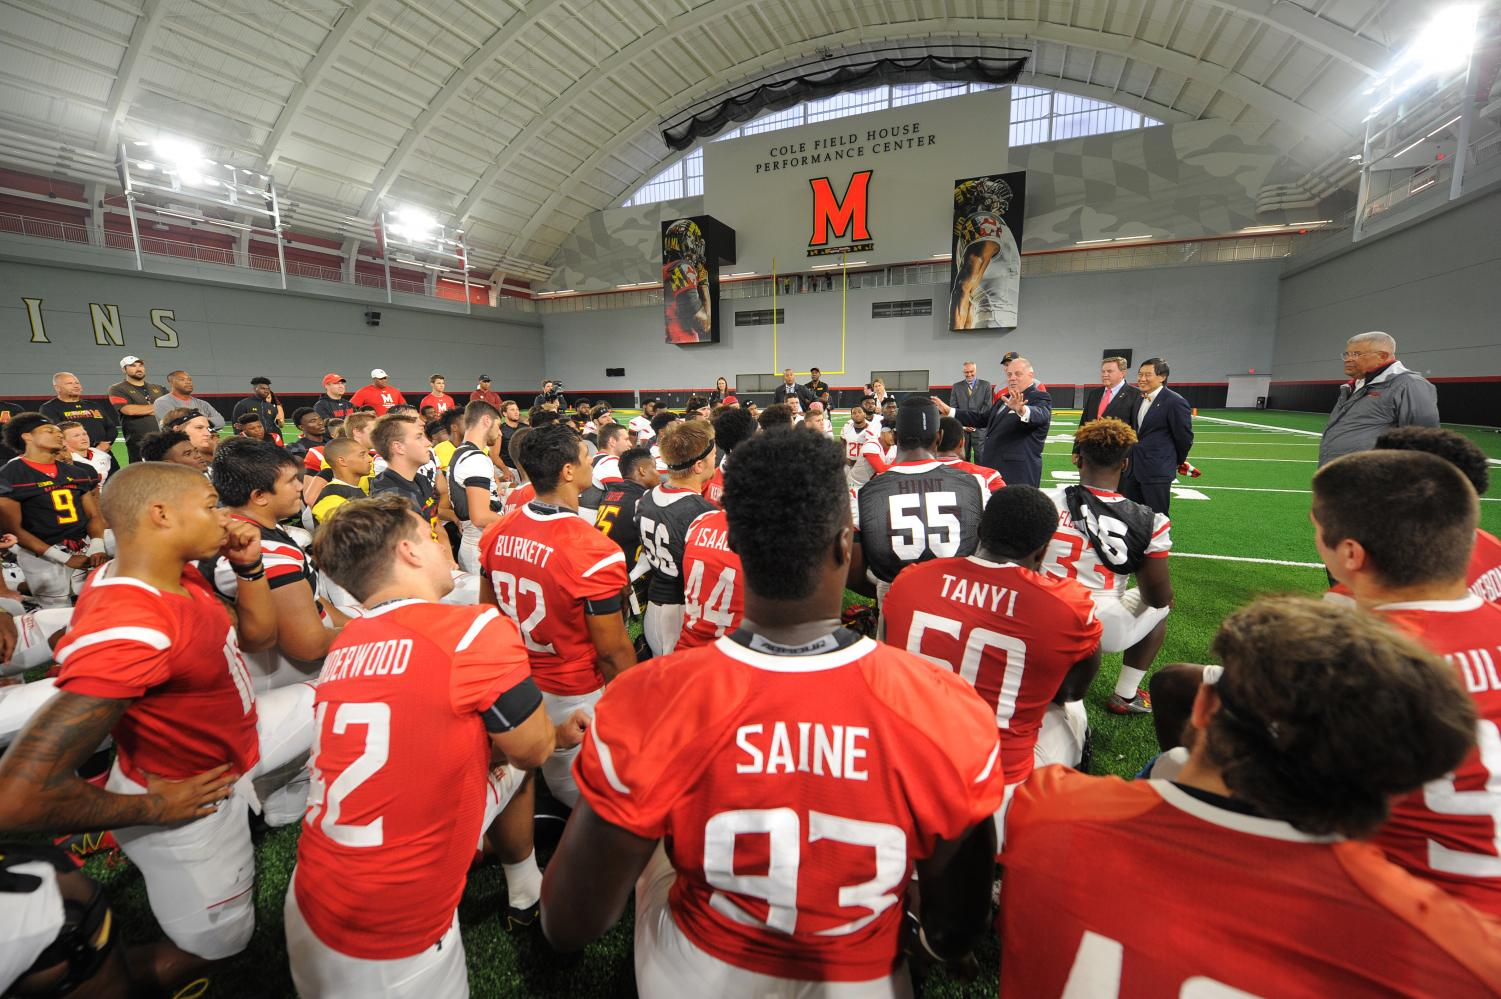 Governor Hogan visits University of Maryland Football Team. Jordan McNair's death sparked a lot of national coverage.